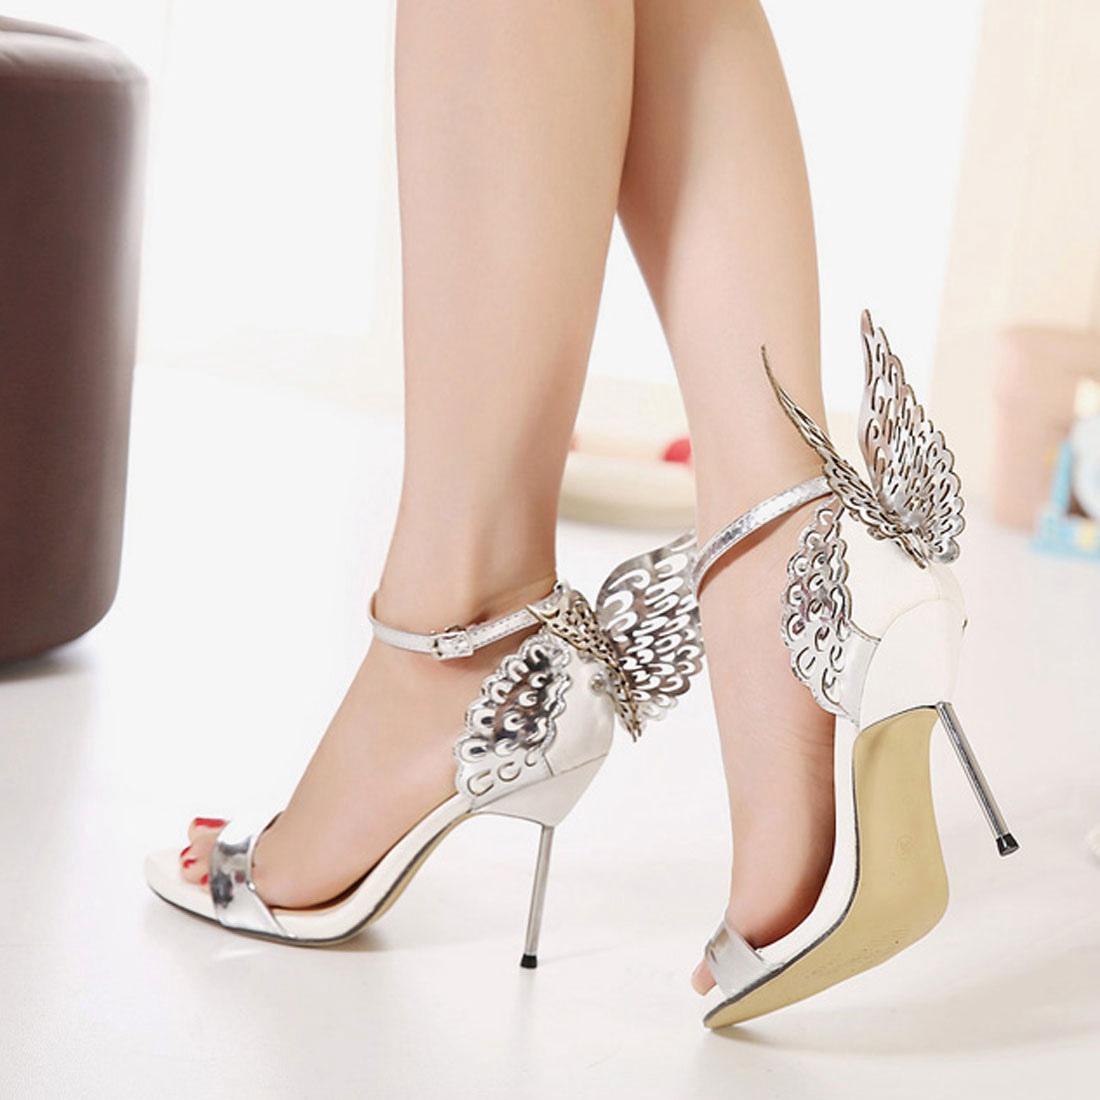 2018 Butterfly Wings Women High Heels Sandals Bowtie Summer Shoes Sandals Woman Pointed Toe Ankle Strap Wedding Shoes Pumps2018 Butterfly Wings Women High Heels Sandals Bowtie Summer Shoes Sandals Woman Pointed Toe Ankle Strap Wedding Shoes Pumps